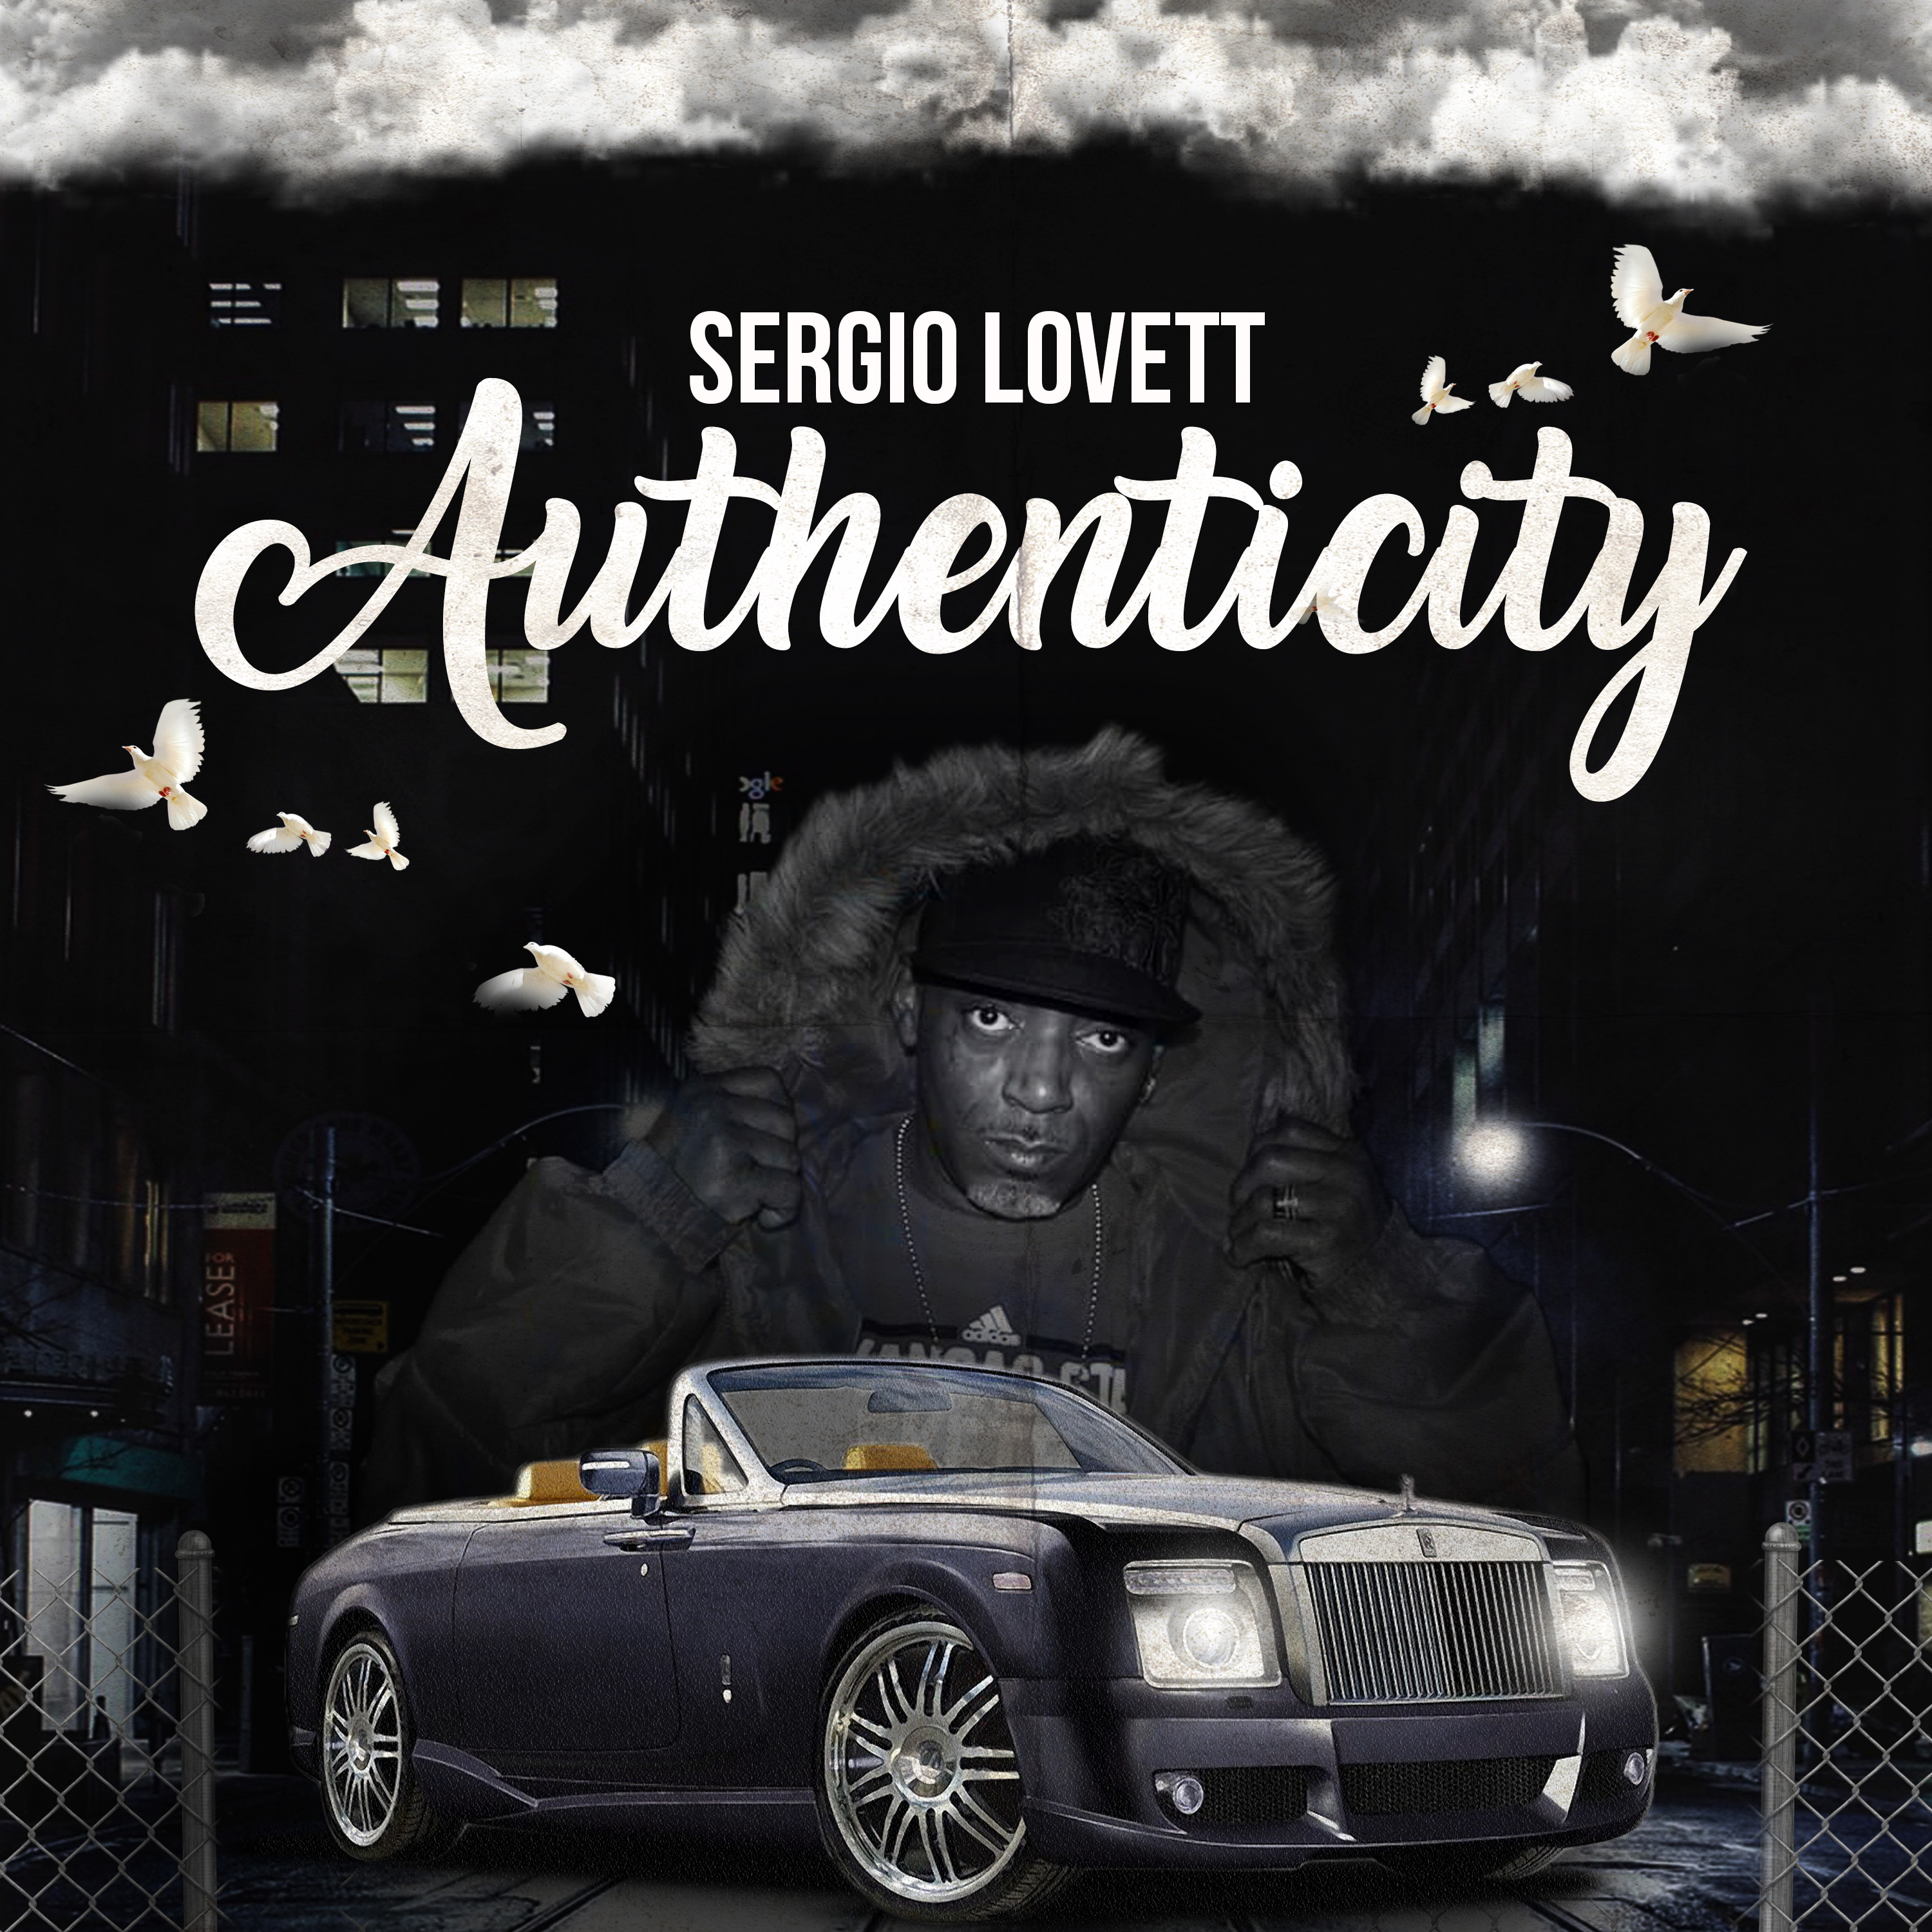 Unique Sounds, Creativity, and High-Quality Music; Sergio Lovett Is Back with A New Album to Win Hearts of Music Lovers All Over the World.